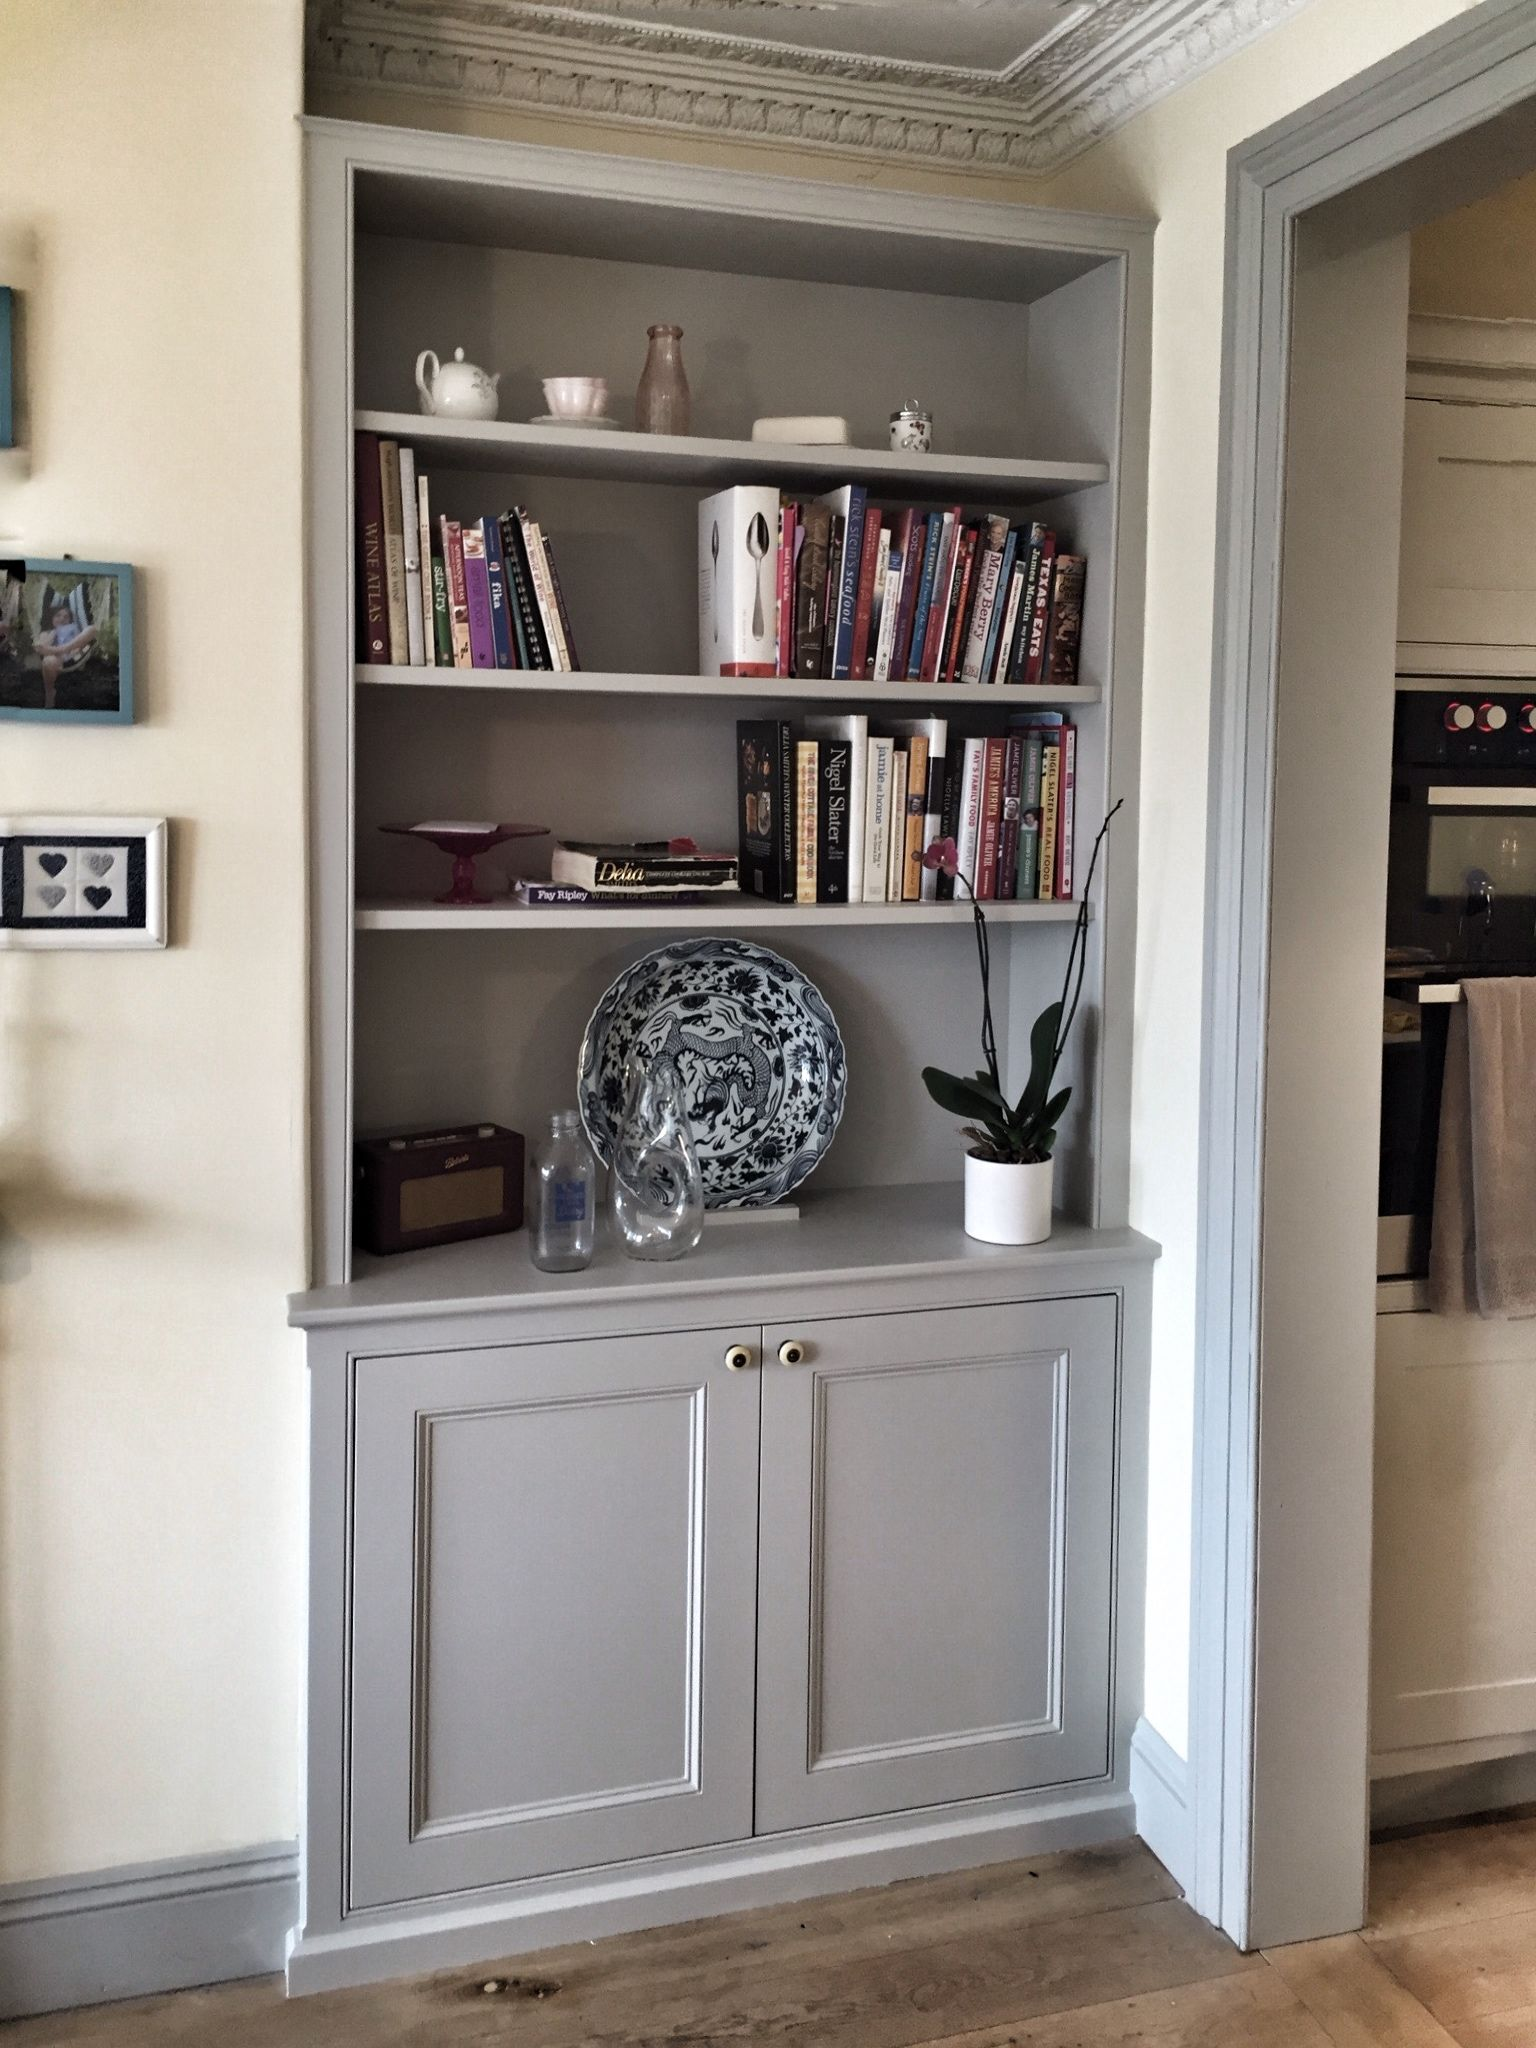 Bespoke fitted alcove unit, traditional dresser style, with book